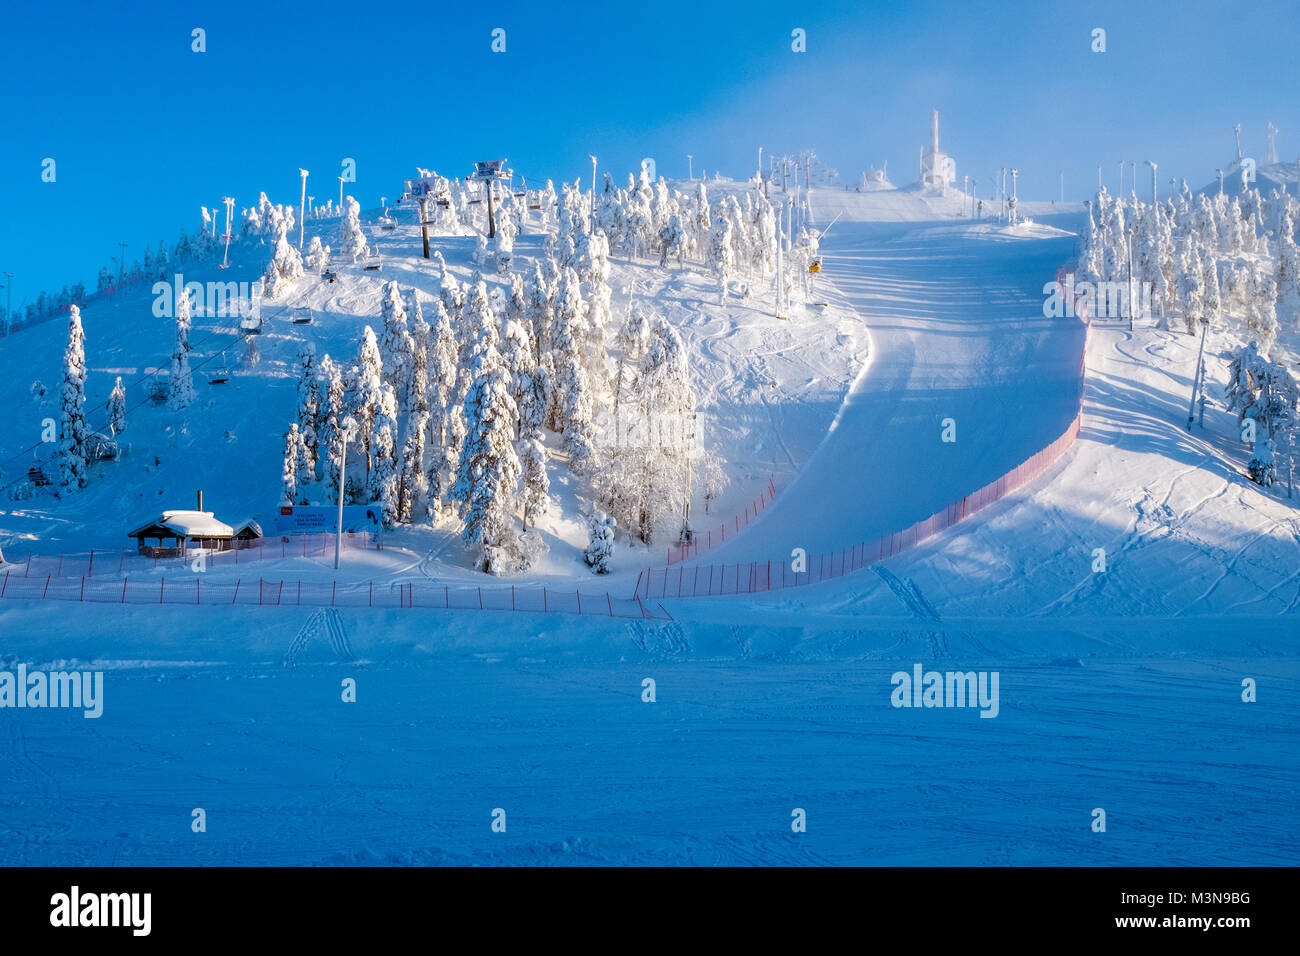 The ski resort of Ruka in Finland - Stock Image